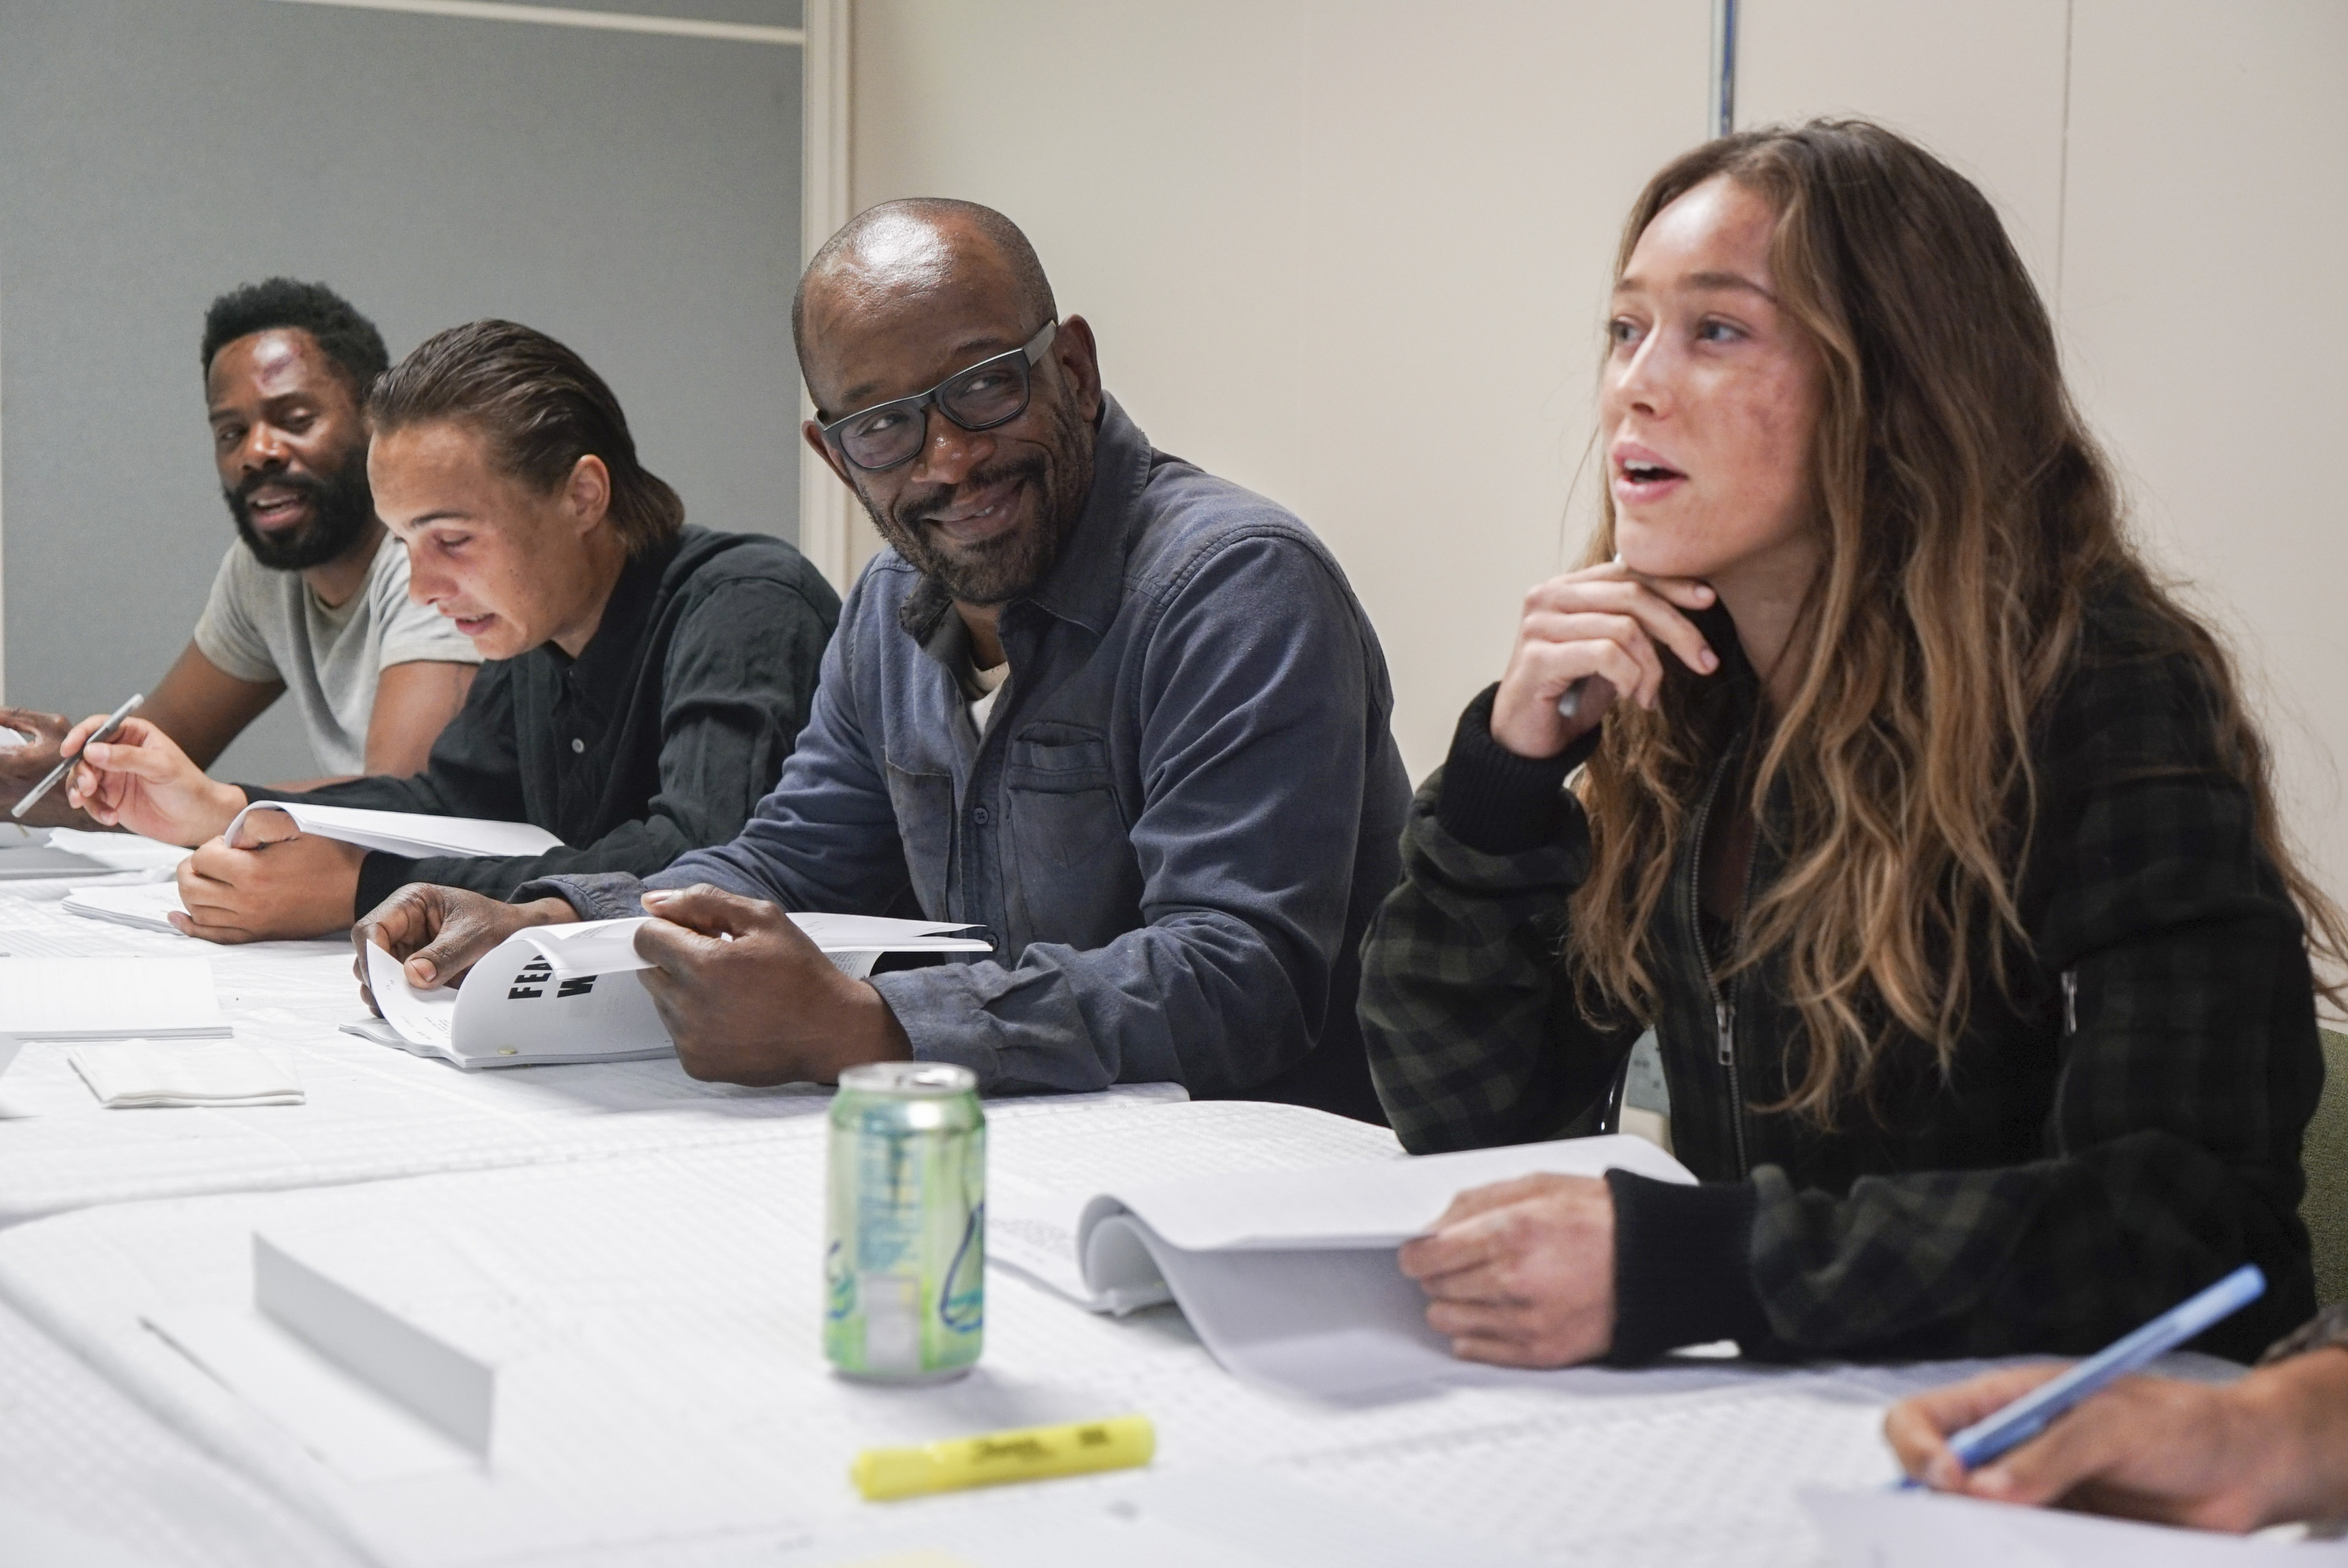 Colman Domingo as Victor Strand, Frank Dillane as Nick Clark, Lennie James as Morgan Jones, Alycia Debnam-Carey as Alicia Clark - Fear the Walking Dead _ Season 4 - Photo Credit: Richard Foreman, Jr/AMC